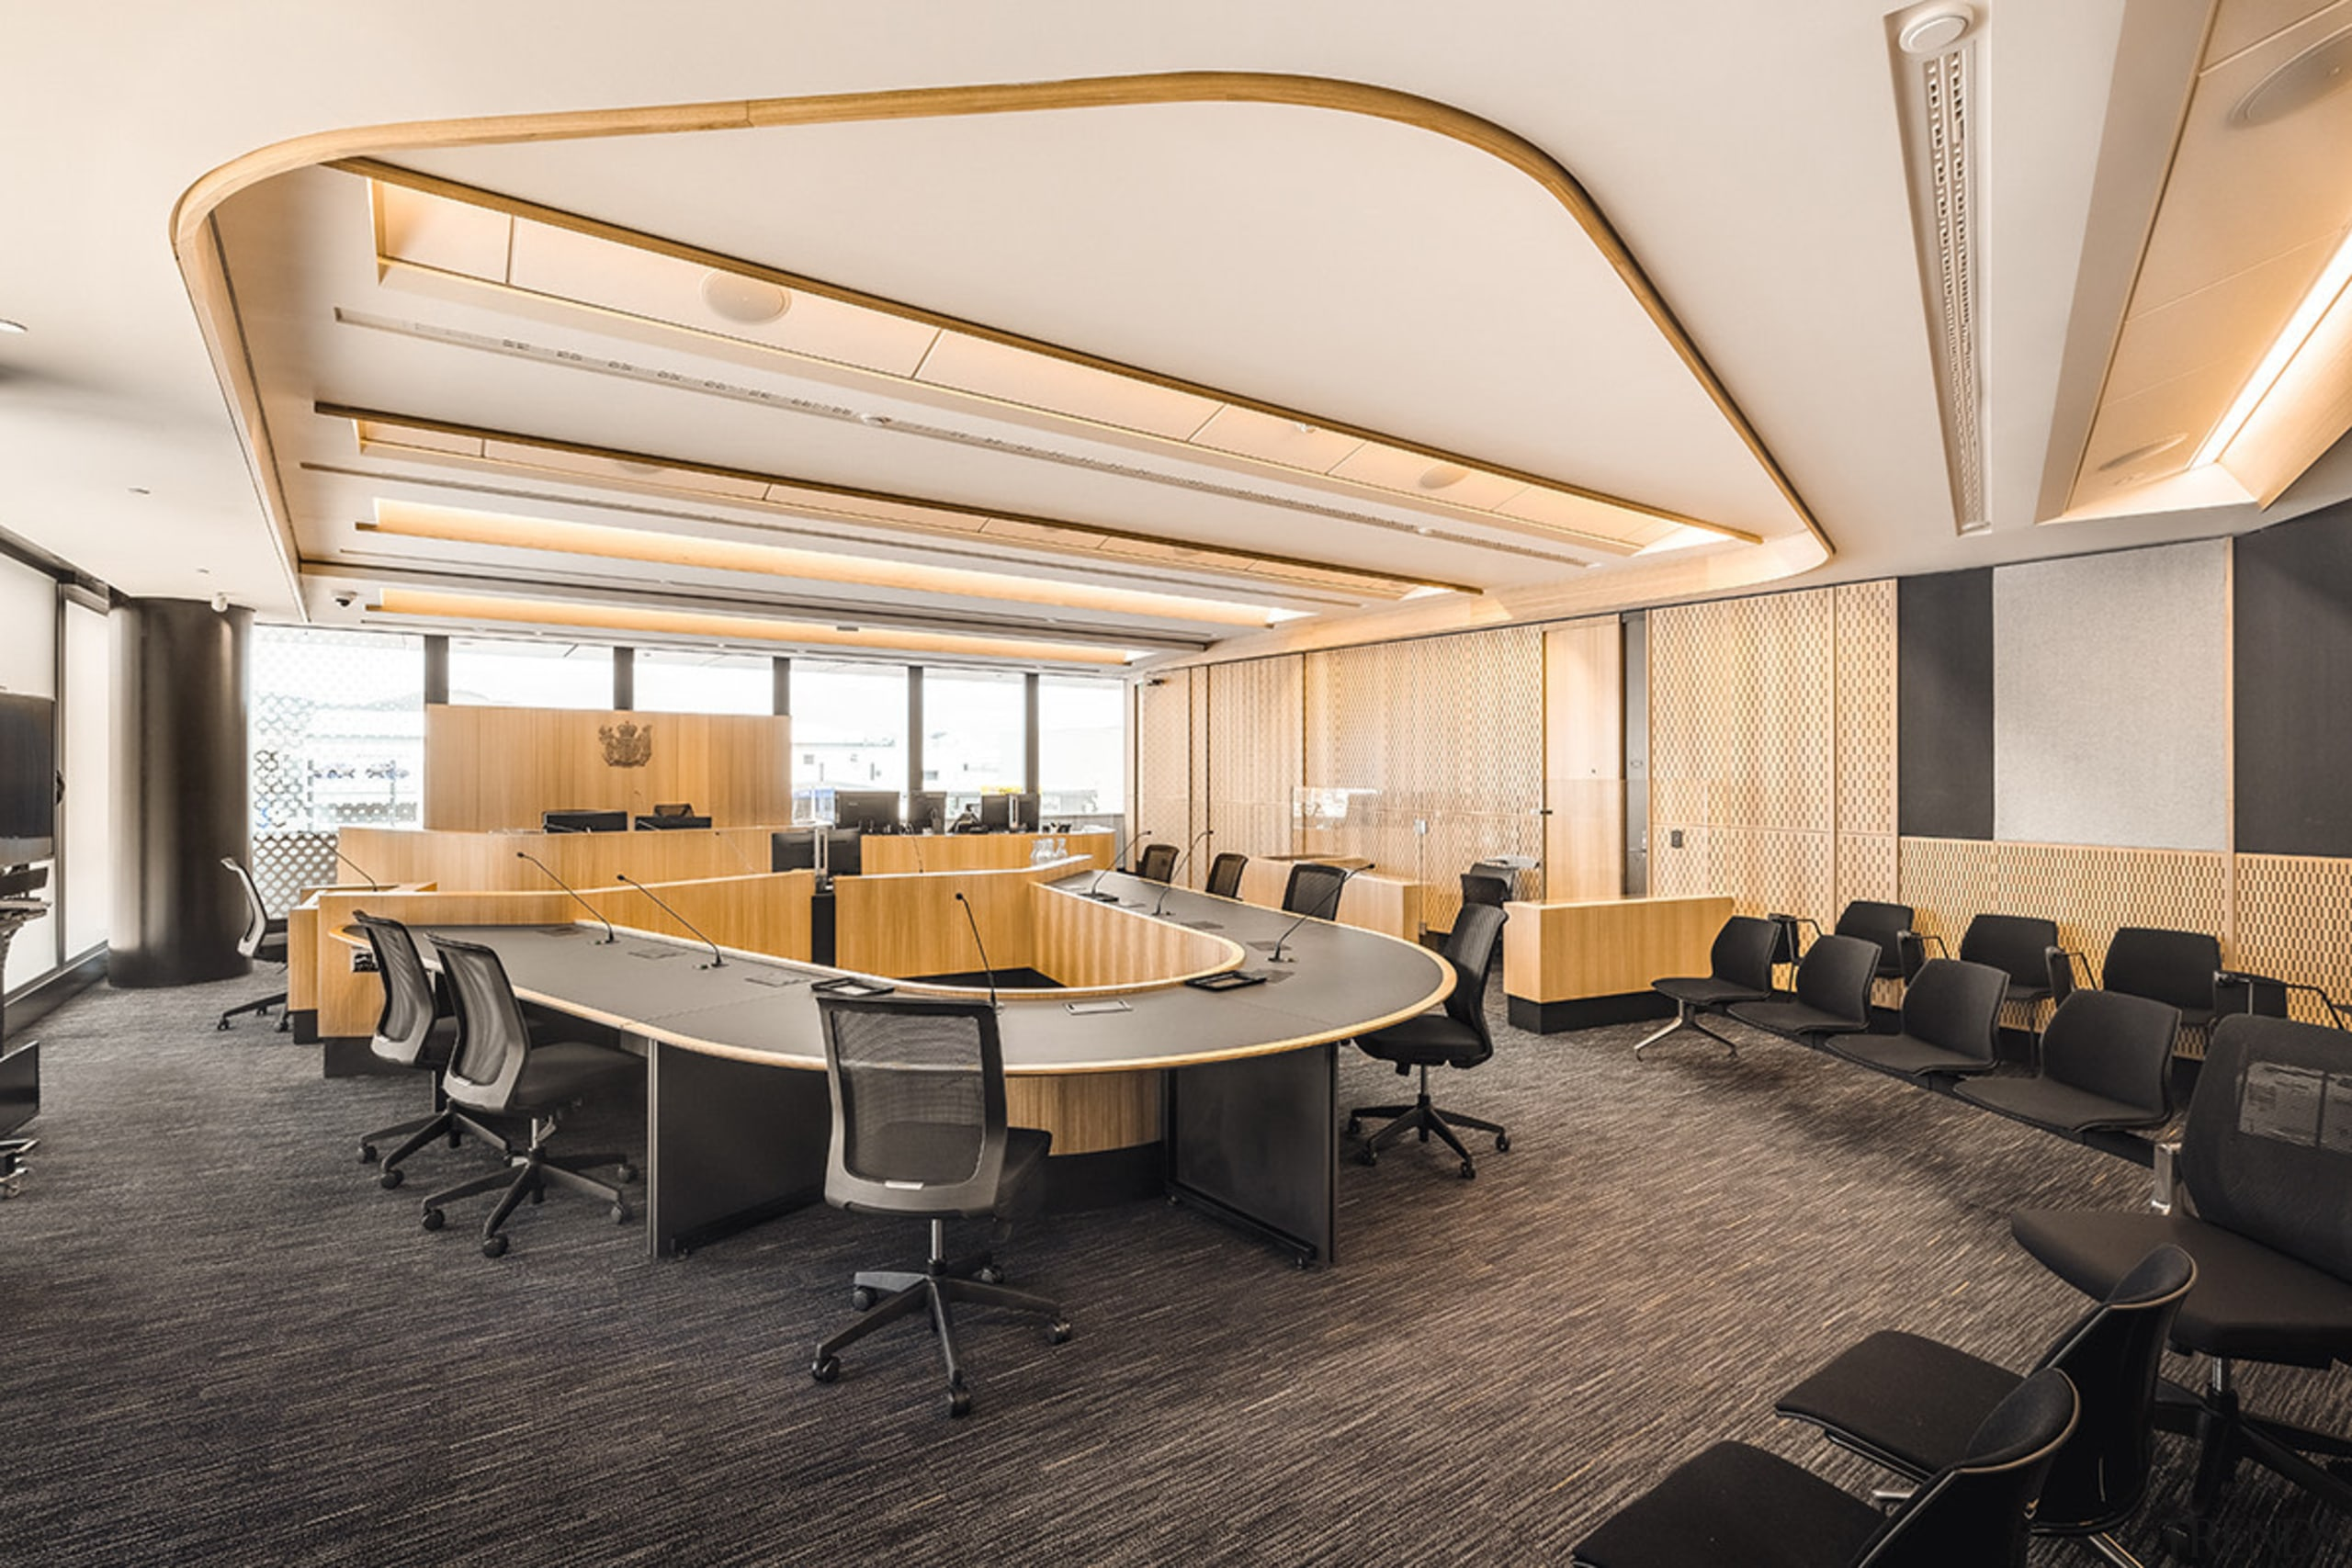 The Youth Court at the Christchurch Justice & ceiling, conference hall, furniture, interior design, office, table, white